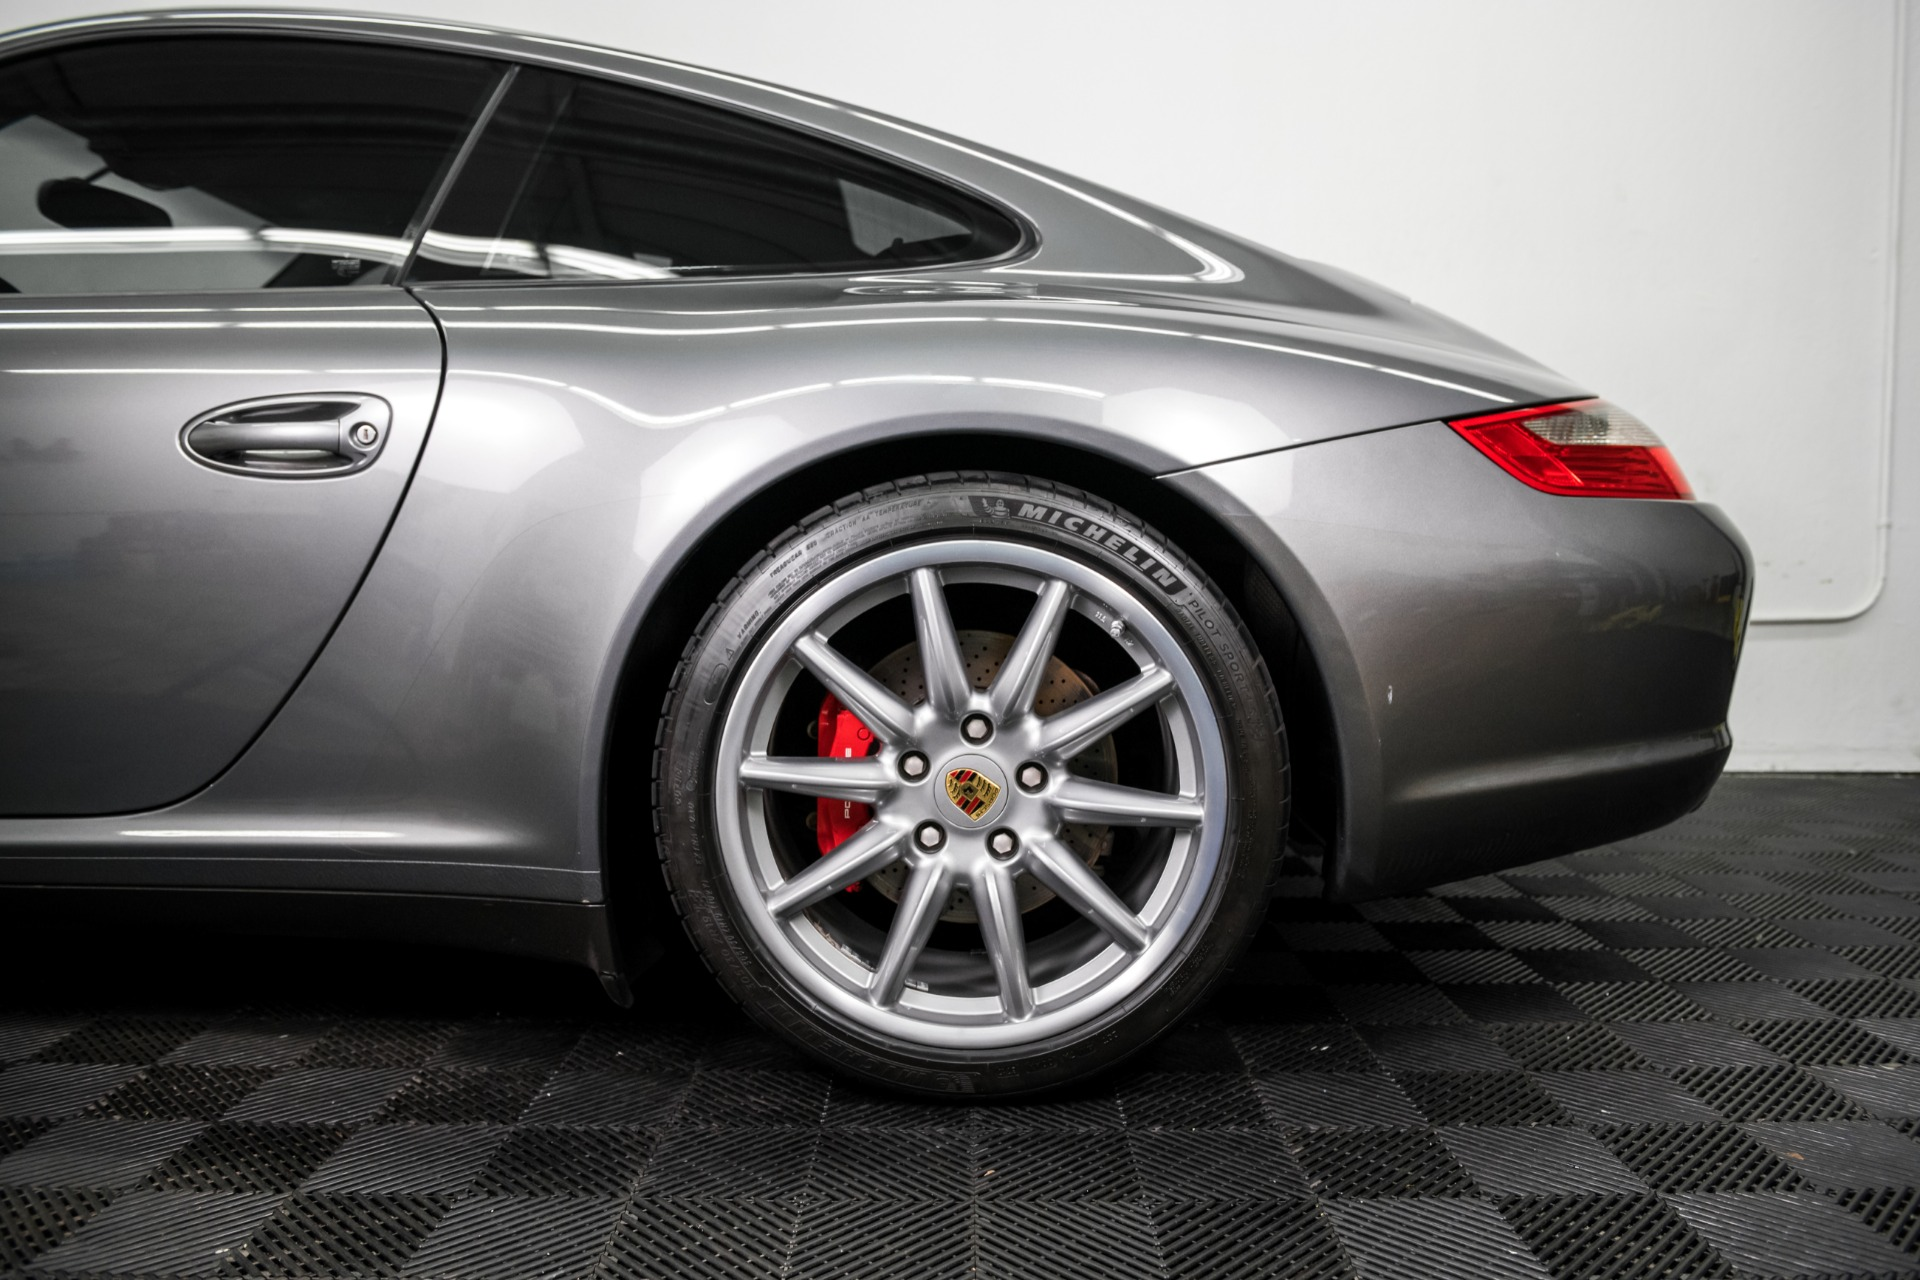 Used 2008 Porsche 911 Carrera 4S Used 2008 Porsche 911 Carrera 4S for sale $48,999 at Response Motors in Mountain View CA 8